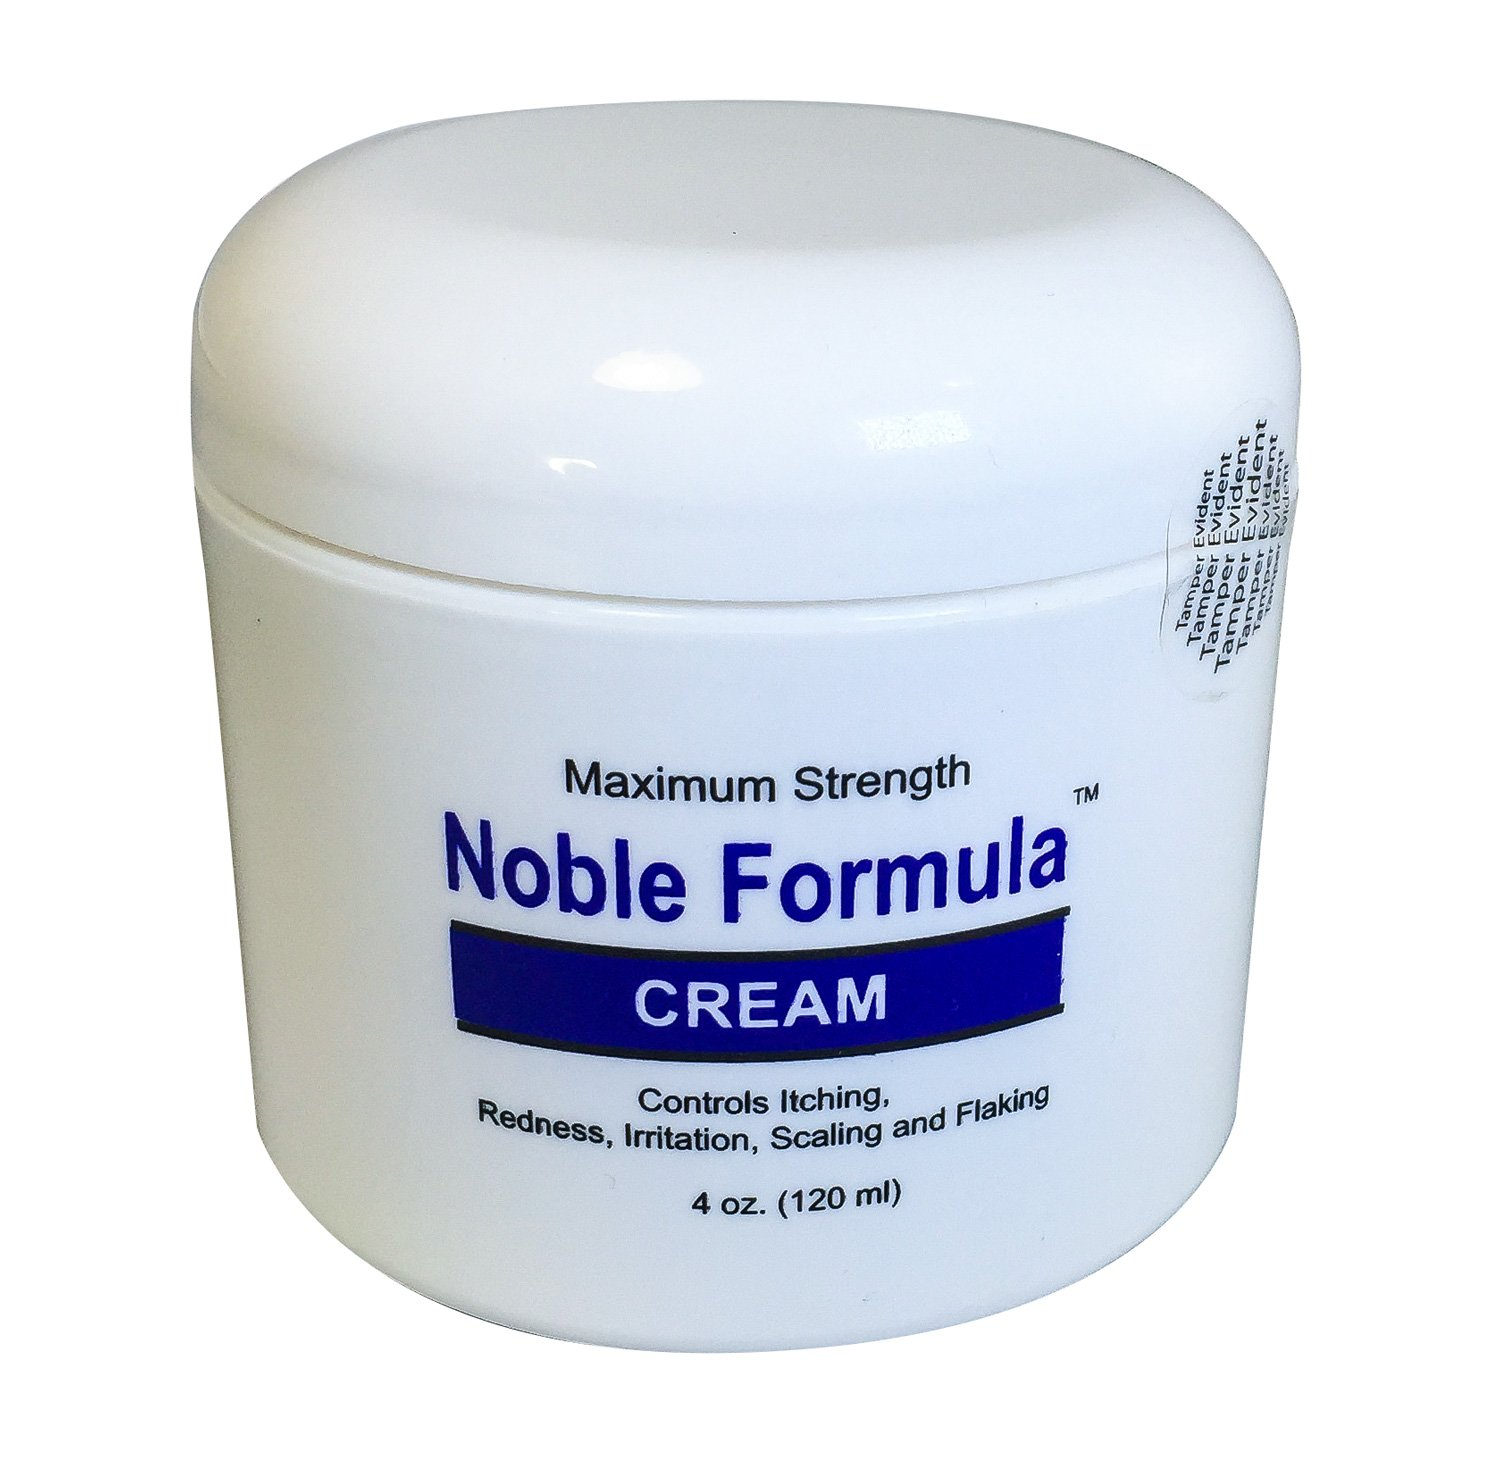 Noble Formula Zinc Cream - Pyrithione Zinc (ZnP), 4 Oz (120ml), Especially Formulated for Relief of Symptoms of Psoriasis, Eczema, Lichen Planus, Seborrheic Dermatitis and Other Hyperkeratotic Skin Conditions HealthCenter NOBLE-C2